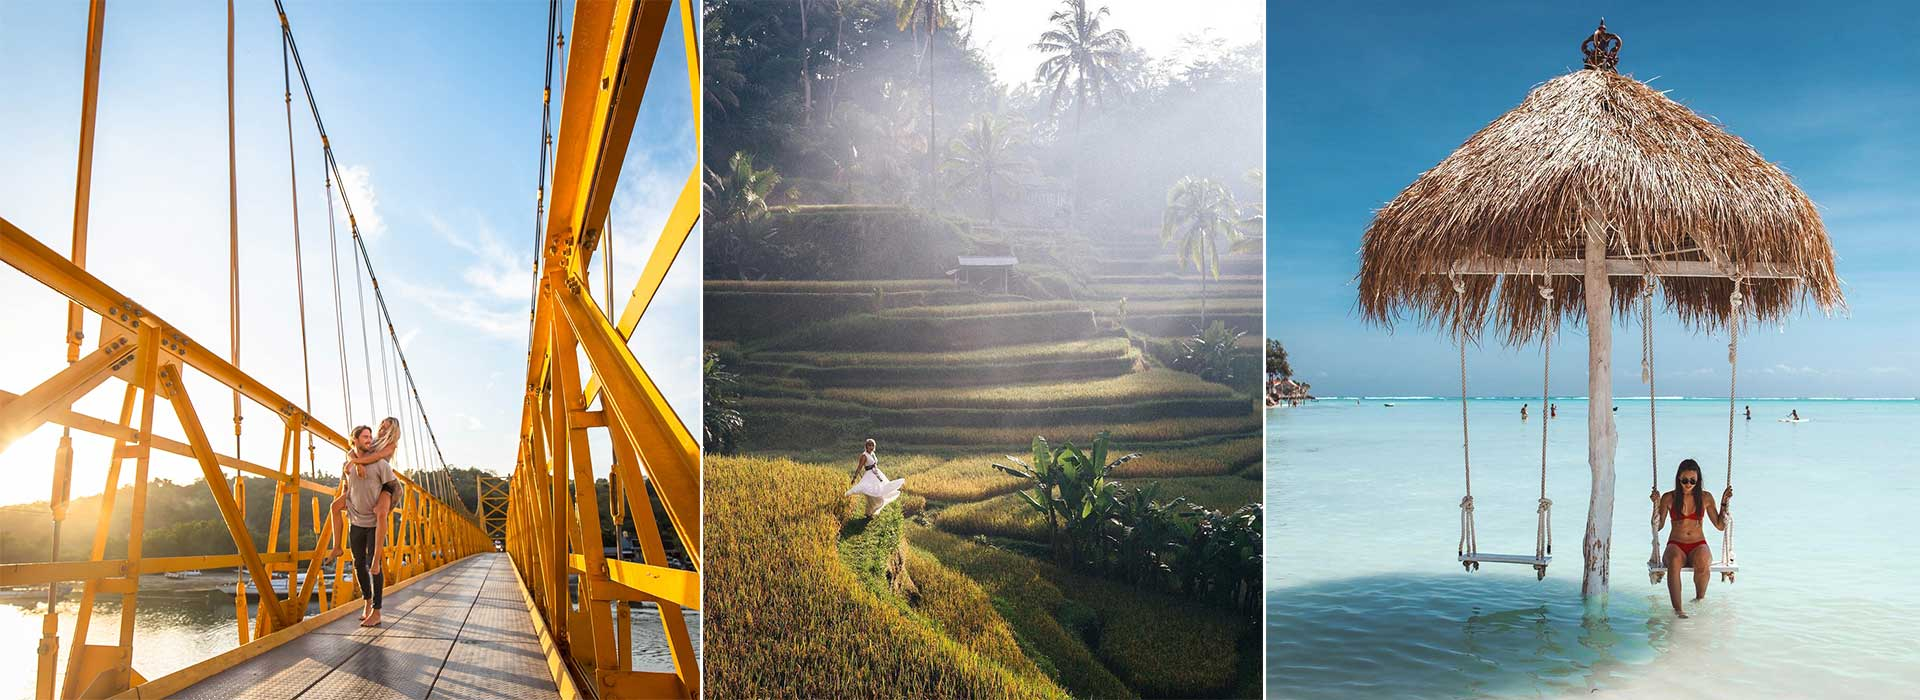 Tours Trip Jpmp Bali Tour Bali Tours Package Bali Tours And Activities